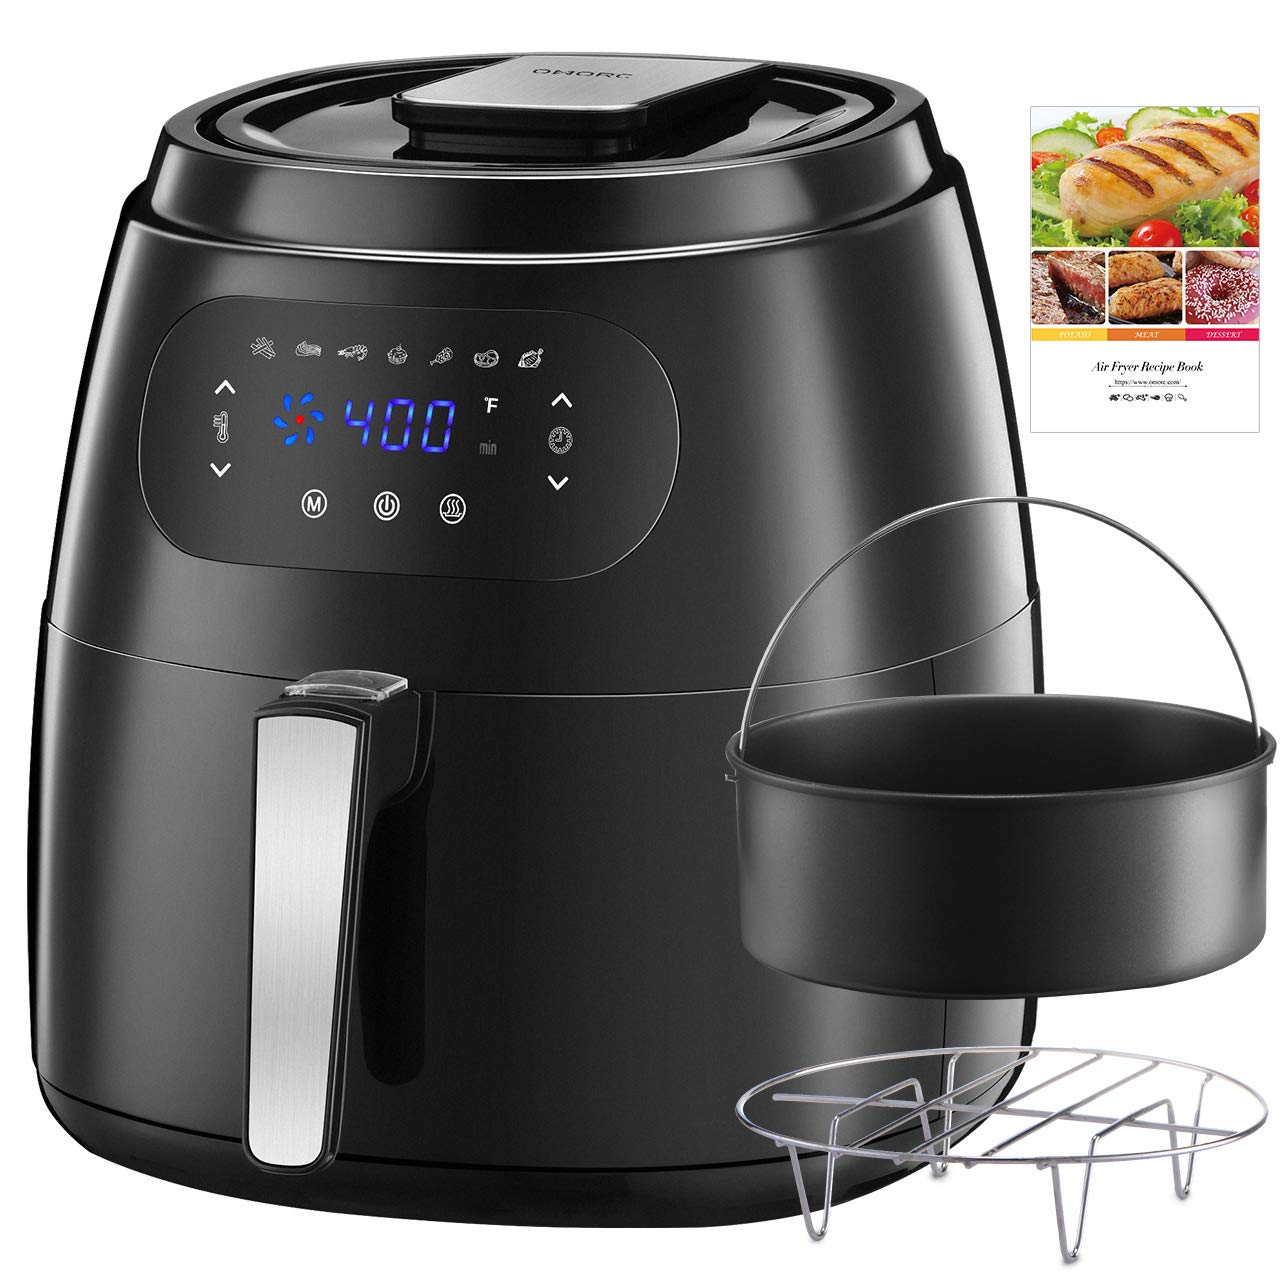 OMORC 7.6QT Large Air Fryer w Capacity Expansion Rack Cake Pan, 1700W Air Fryer XXL Oven w Digital Screen, Hot Air Fryer Cooker w Keep Warm Function, 8-15 modes, 2-Year Warranty, Recipe ME181